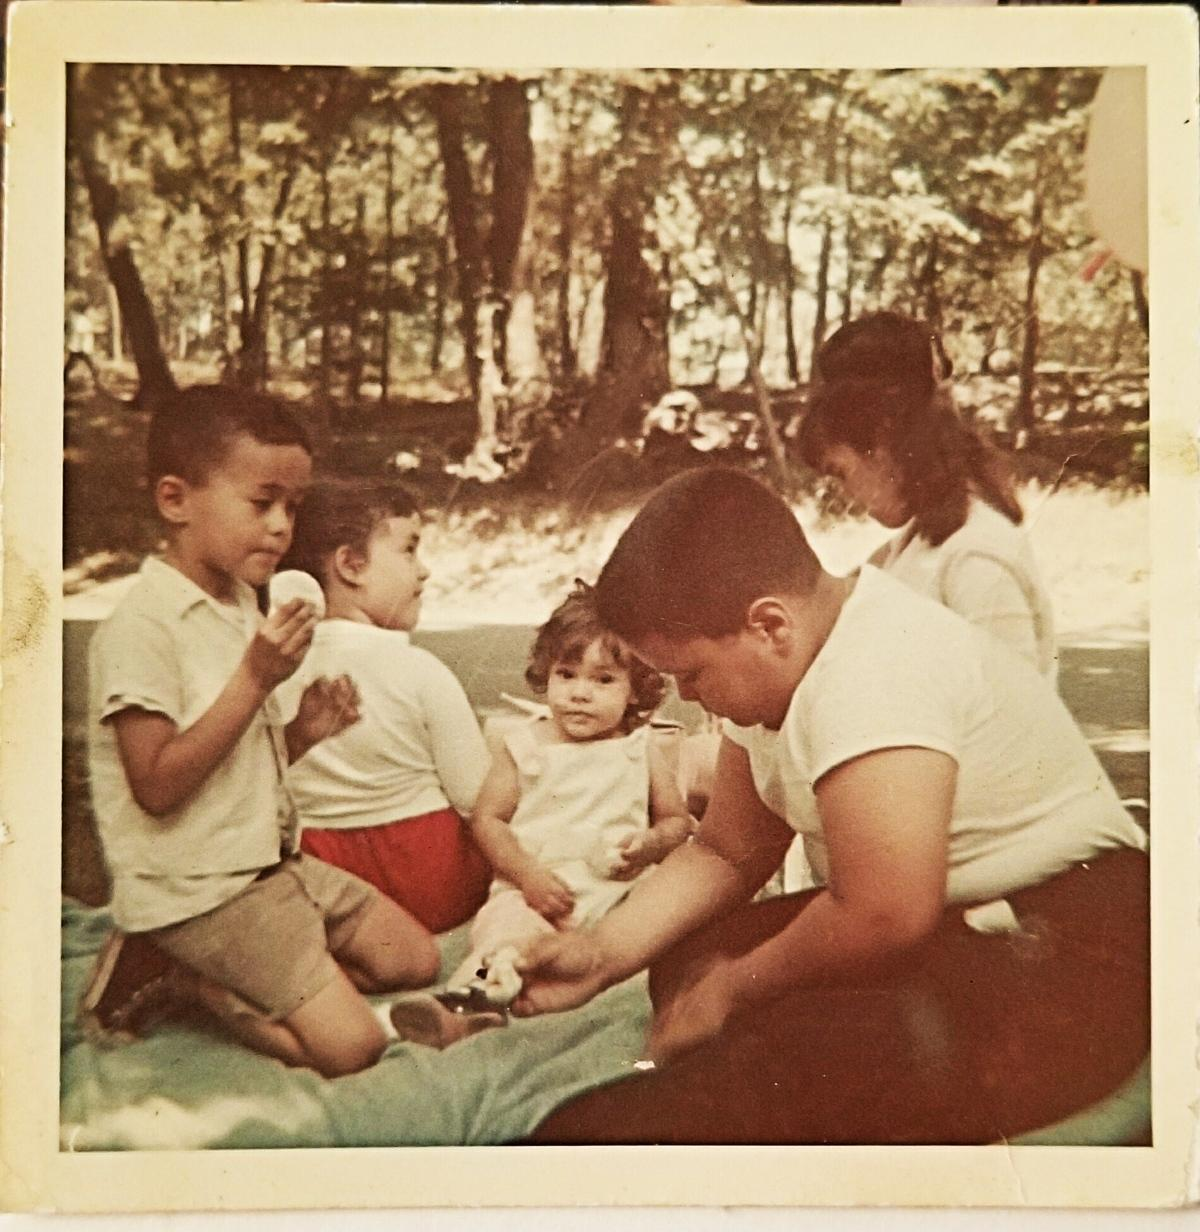 My Family @ NYBG 1965 - As a child, the New York Botanical Garden (NYBG) would allow picnics on the premises. I recall sharing family meals, playing, scraped knees and even eating a daisy or two.Foto taken by my Mother Hilda Irizarry, Sr. with a Rolieflex TLR.At Center - Xposure Artisan age 16 months.